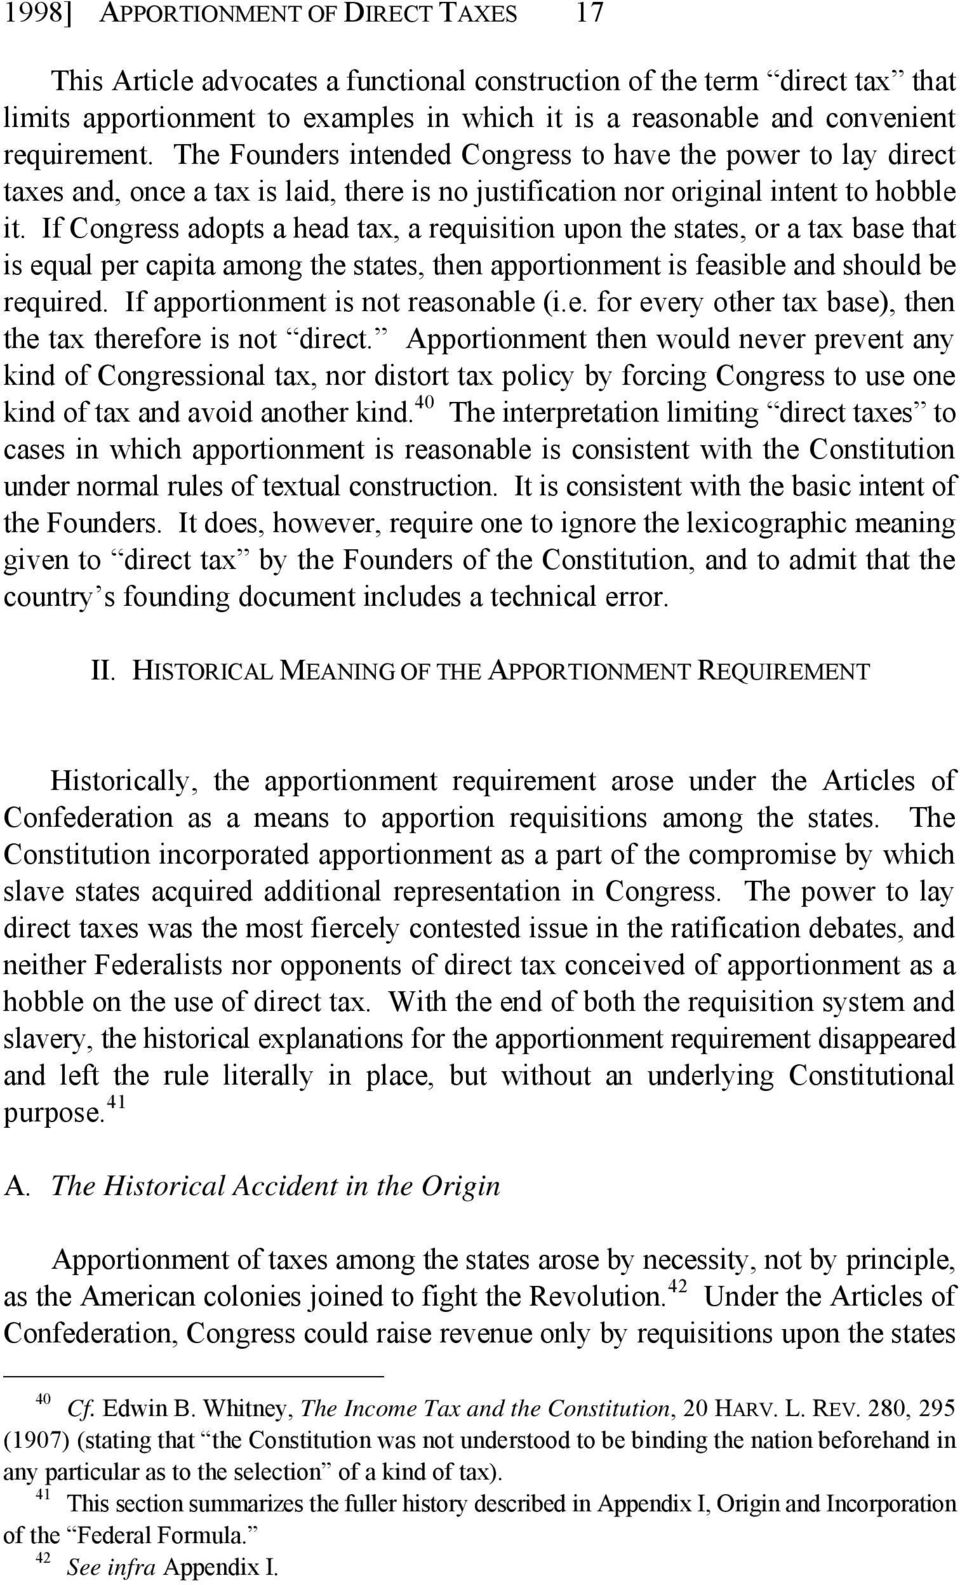 If Congress adopts a head tax, a requisition upon the states, or a tax base that is equal per capita among the states, then apportionment is feasible and should be required.